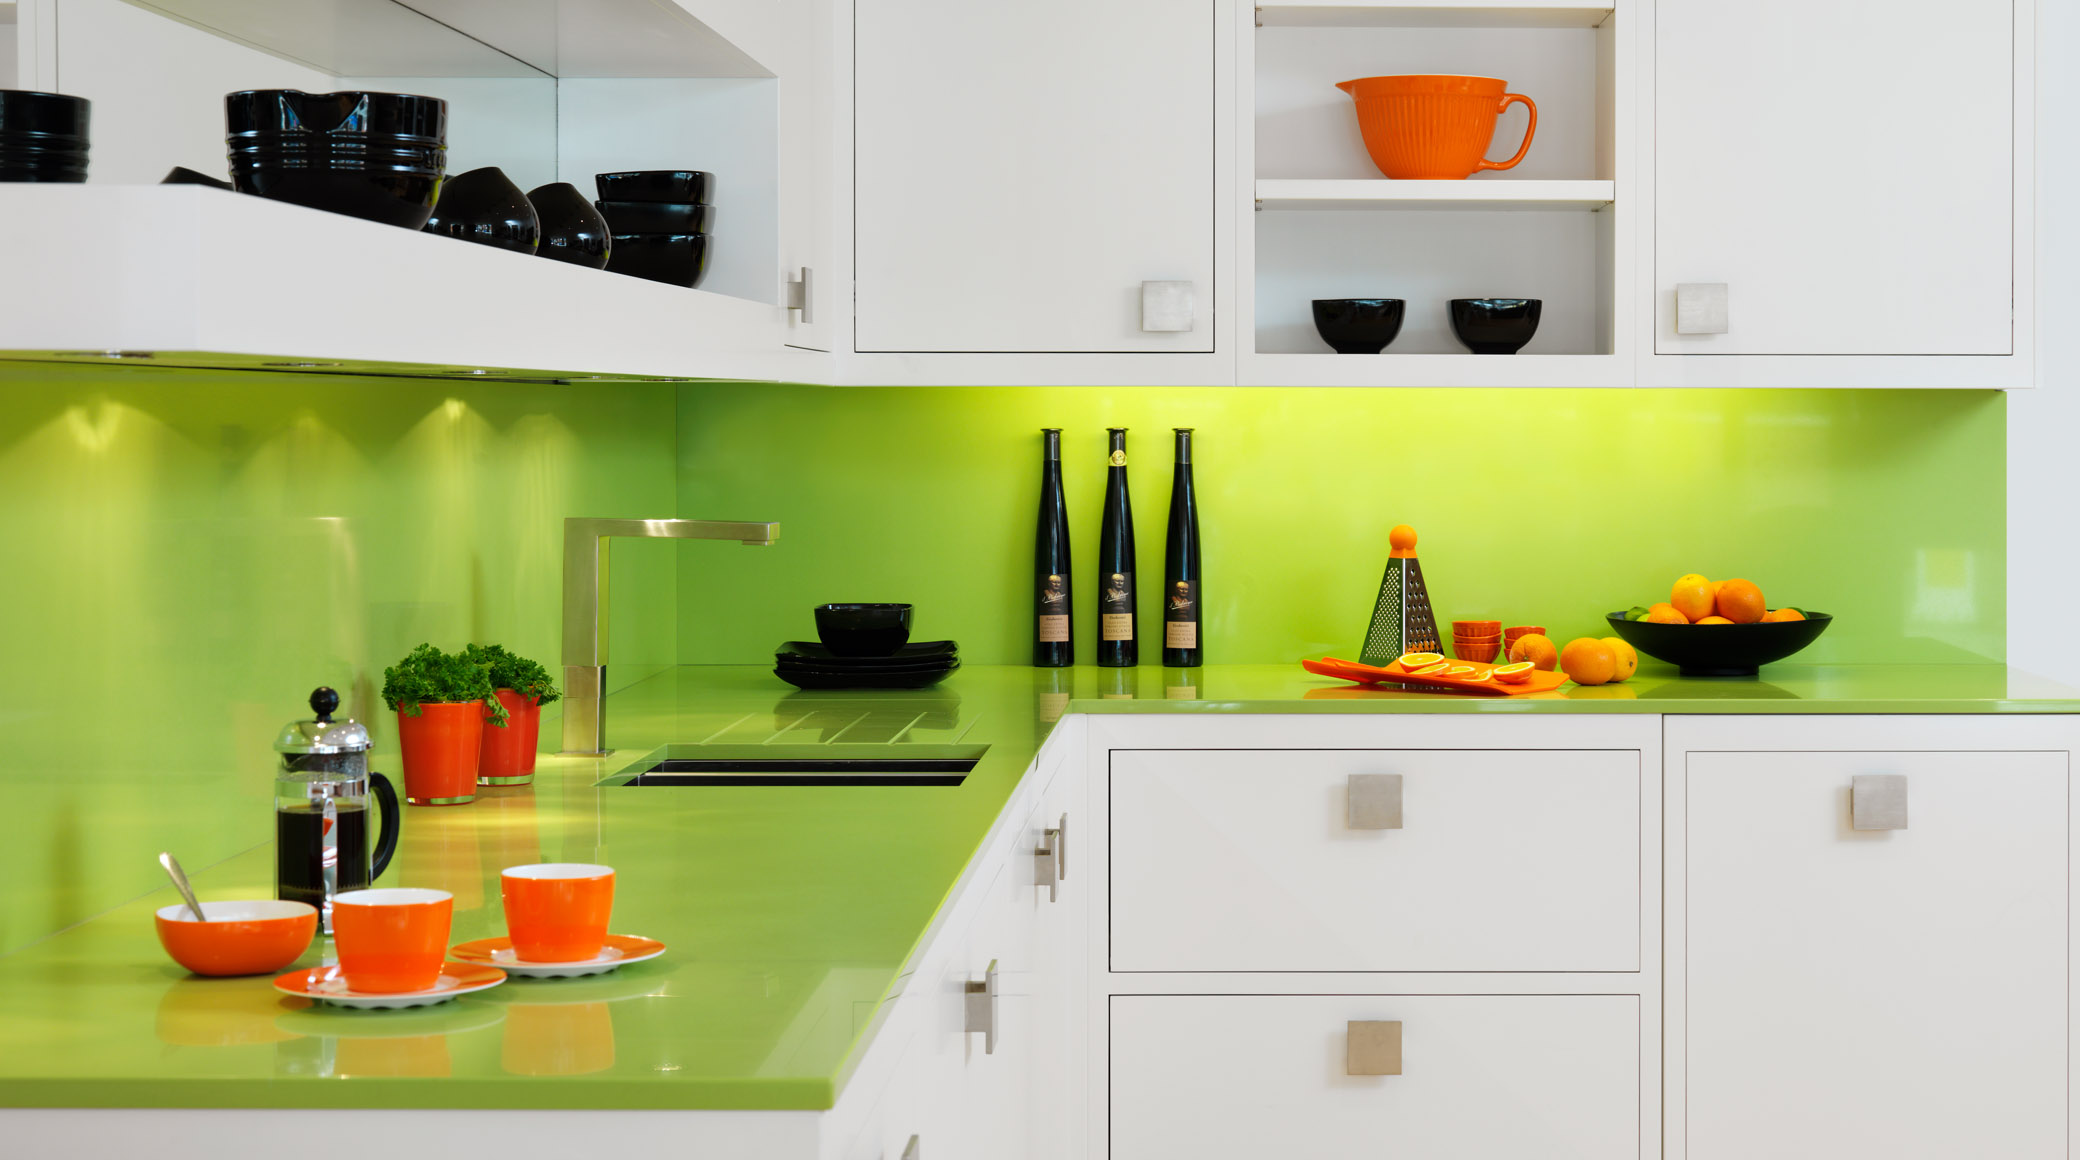 Luxury L Shaped Kitchen Cabinet In White Come With Green Lime - Green kitchen accessories ideas